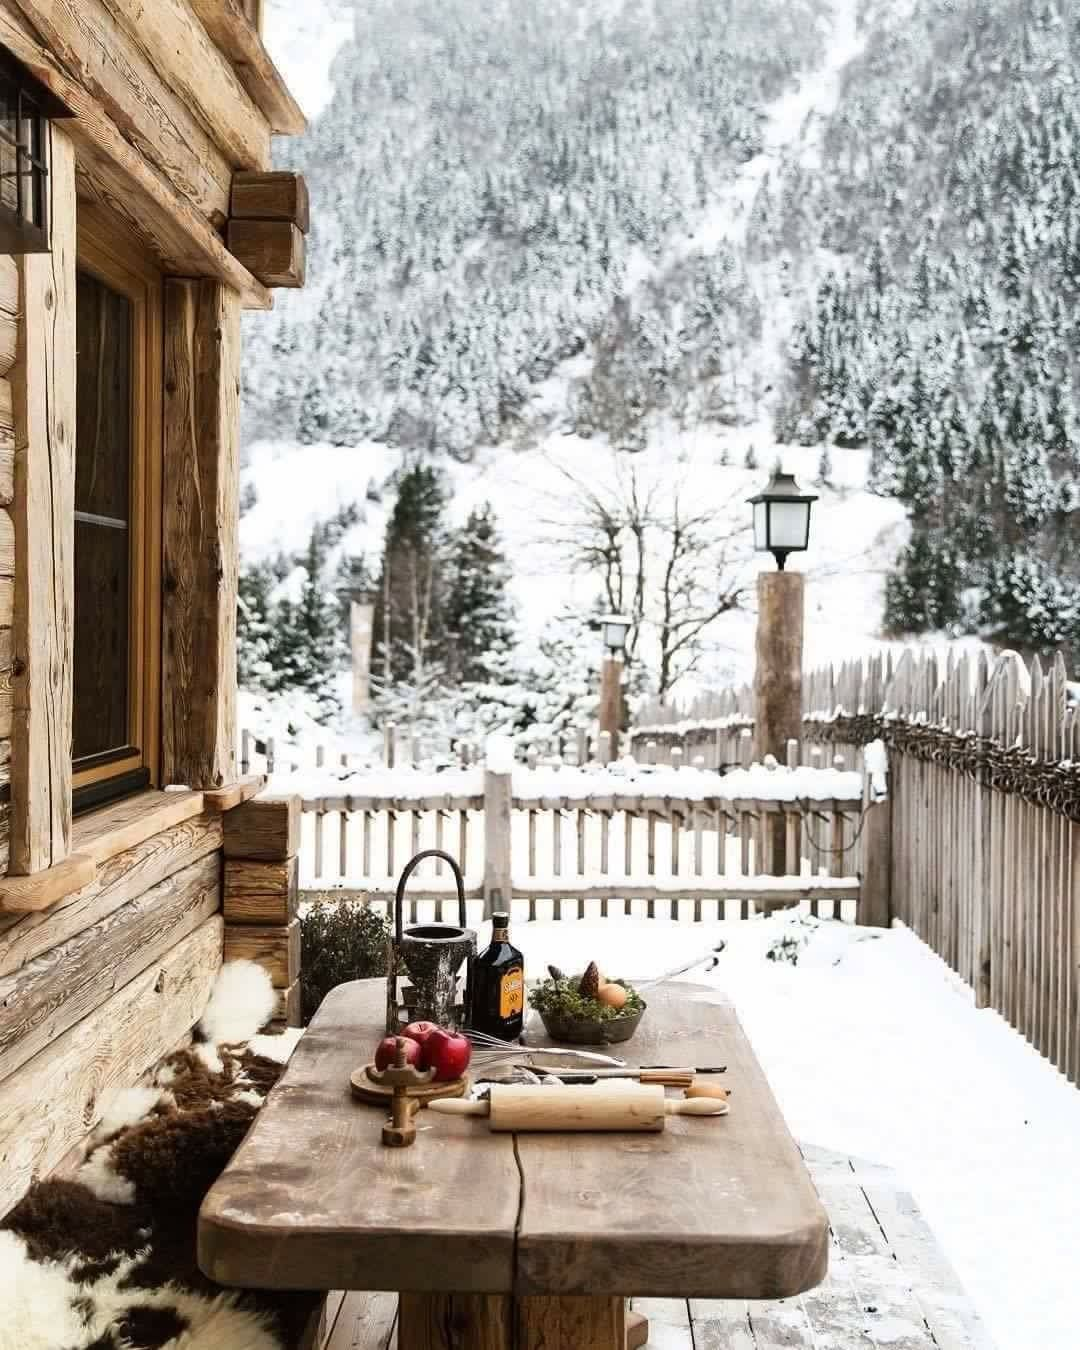 snow on a winter cabin house